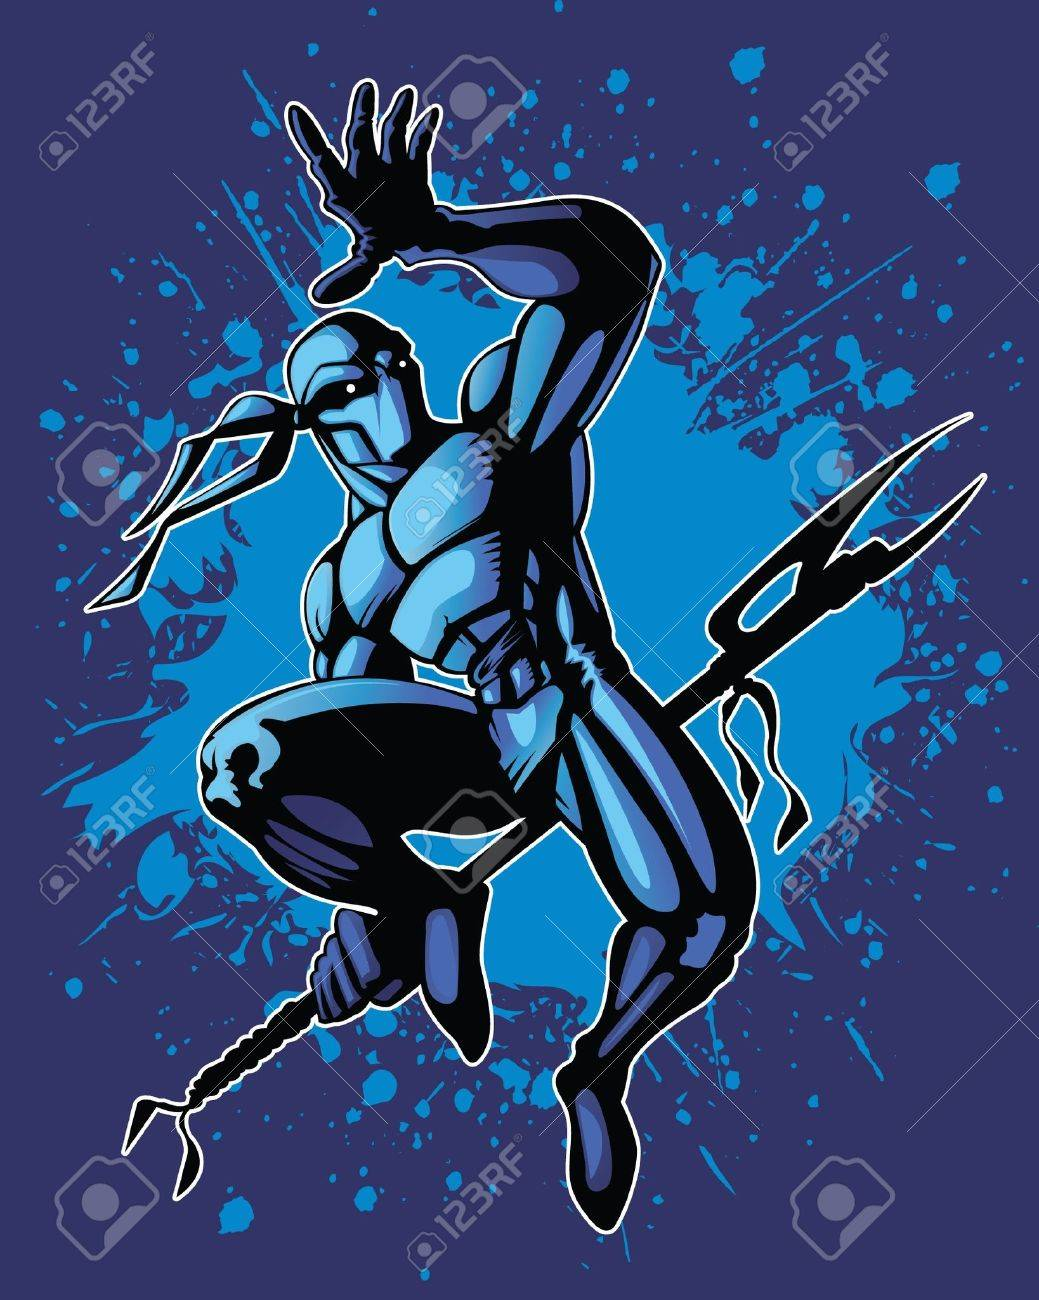 Martial artist in a dynamic fighting position. Stock Vector - 10066937